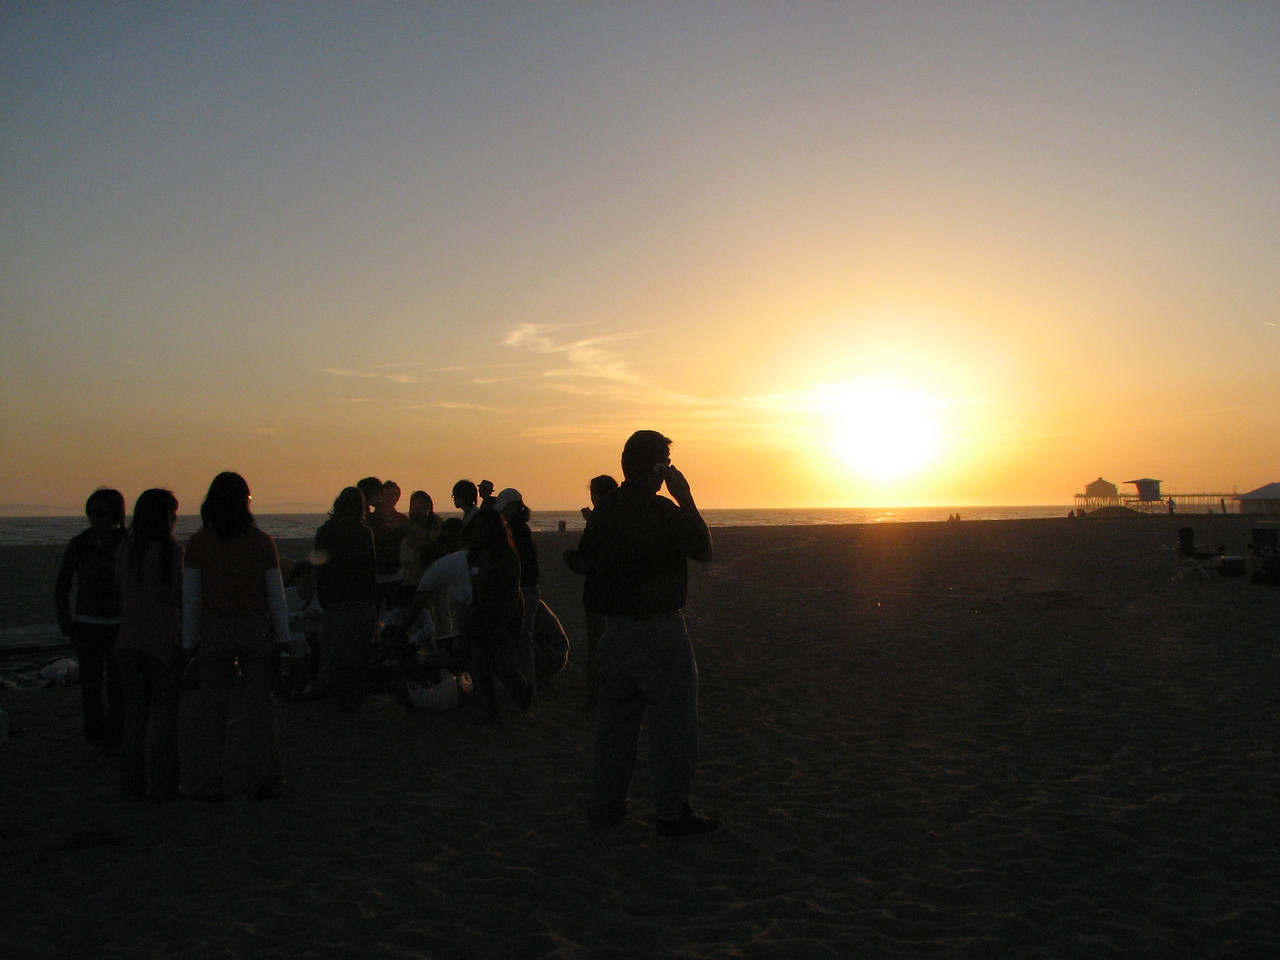 2008 03 24 Mon - Talbot & Int'l students @ the beach - Against the sunset